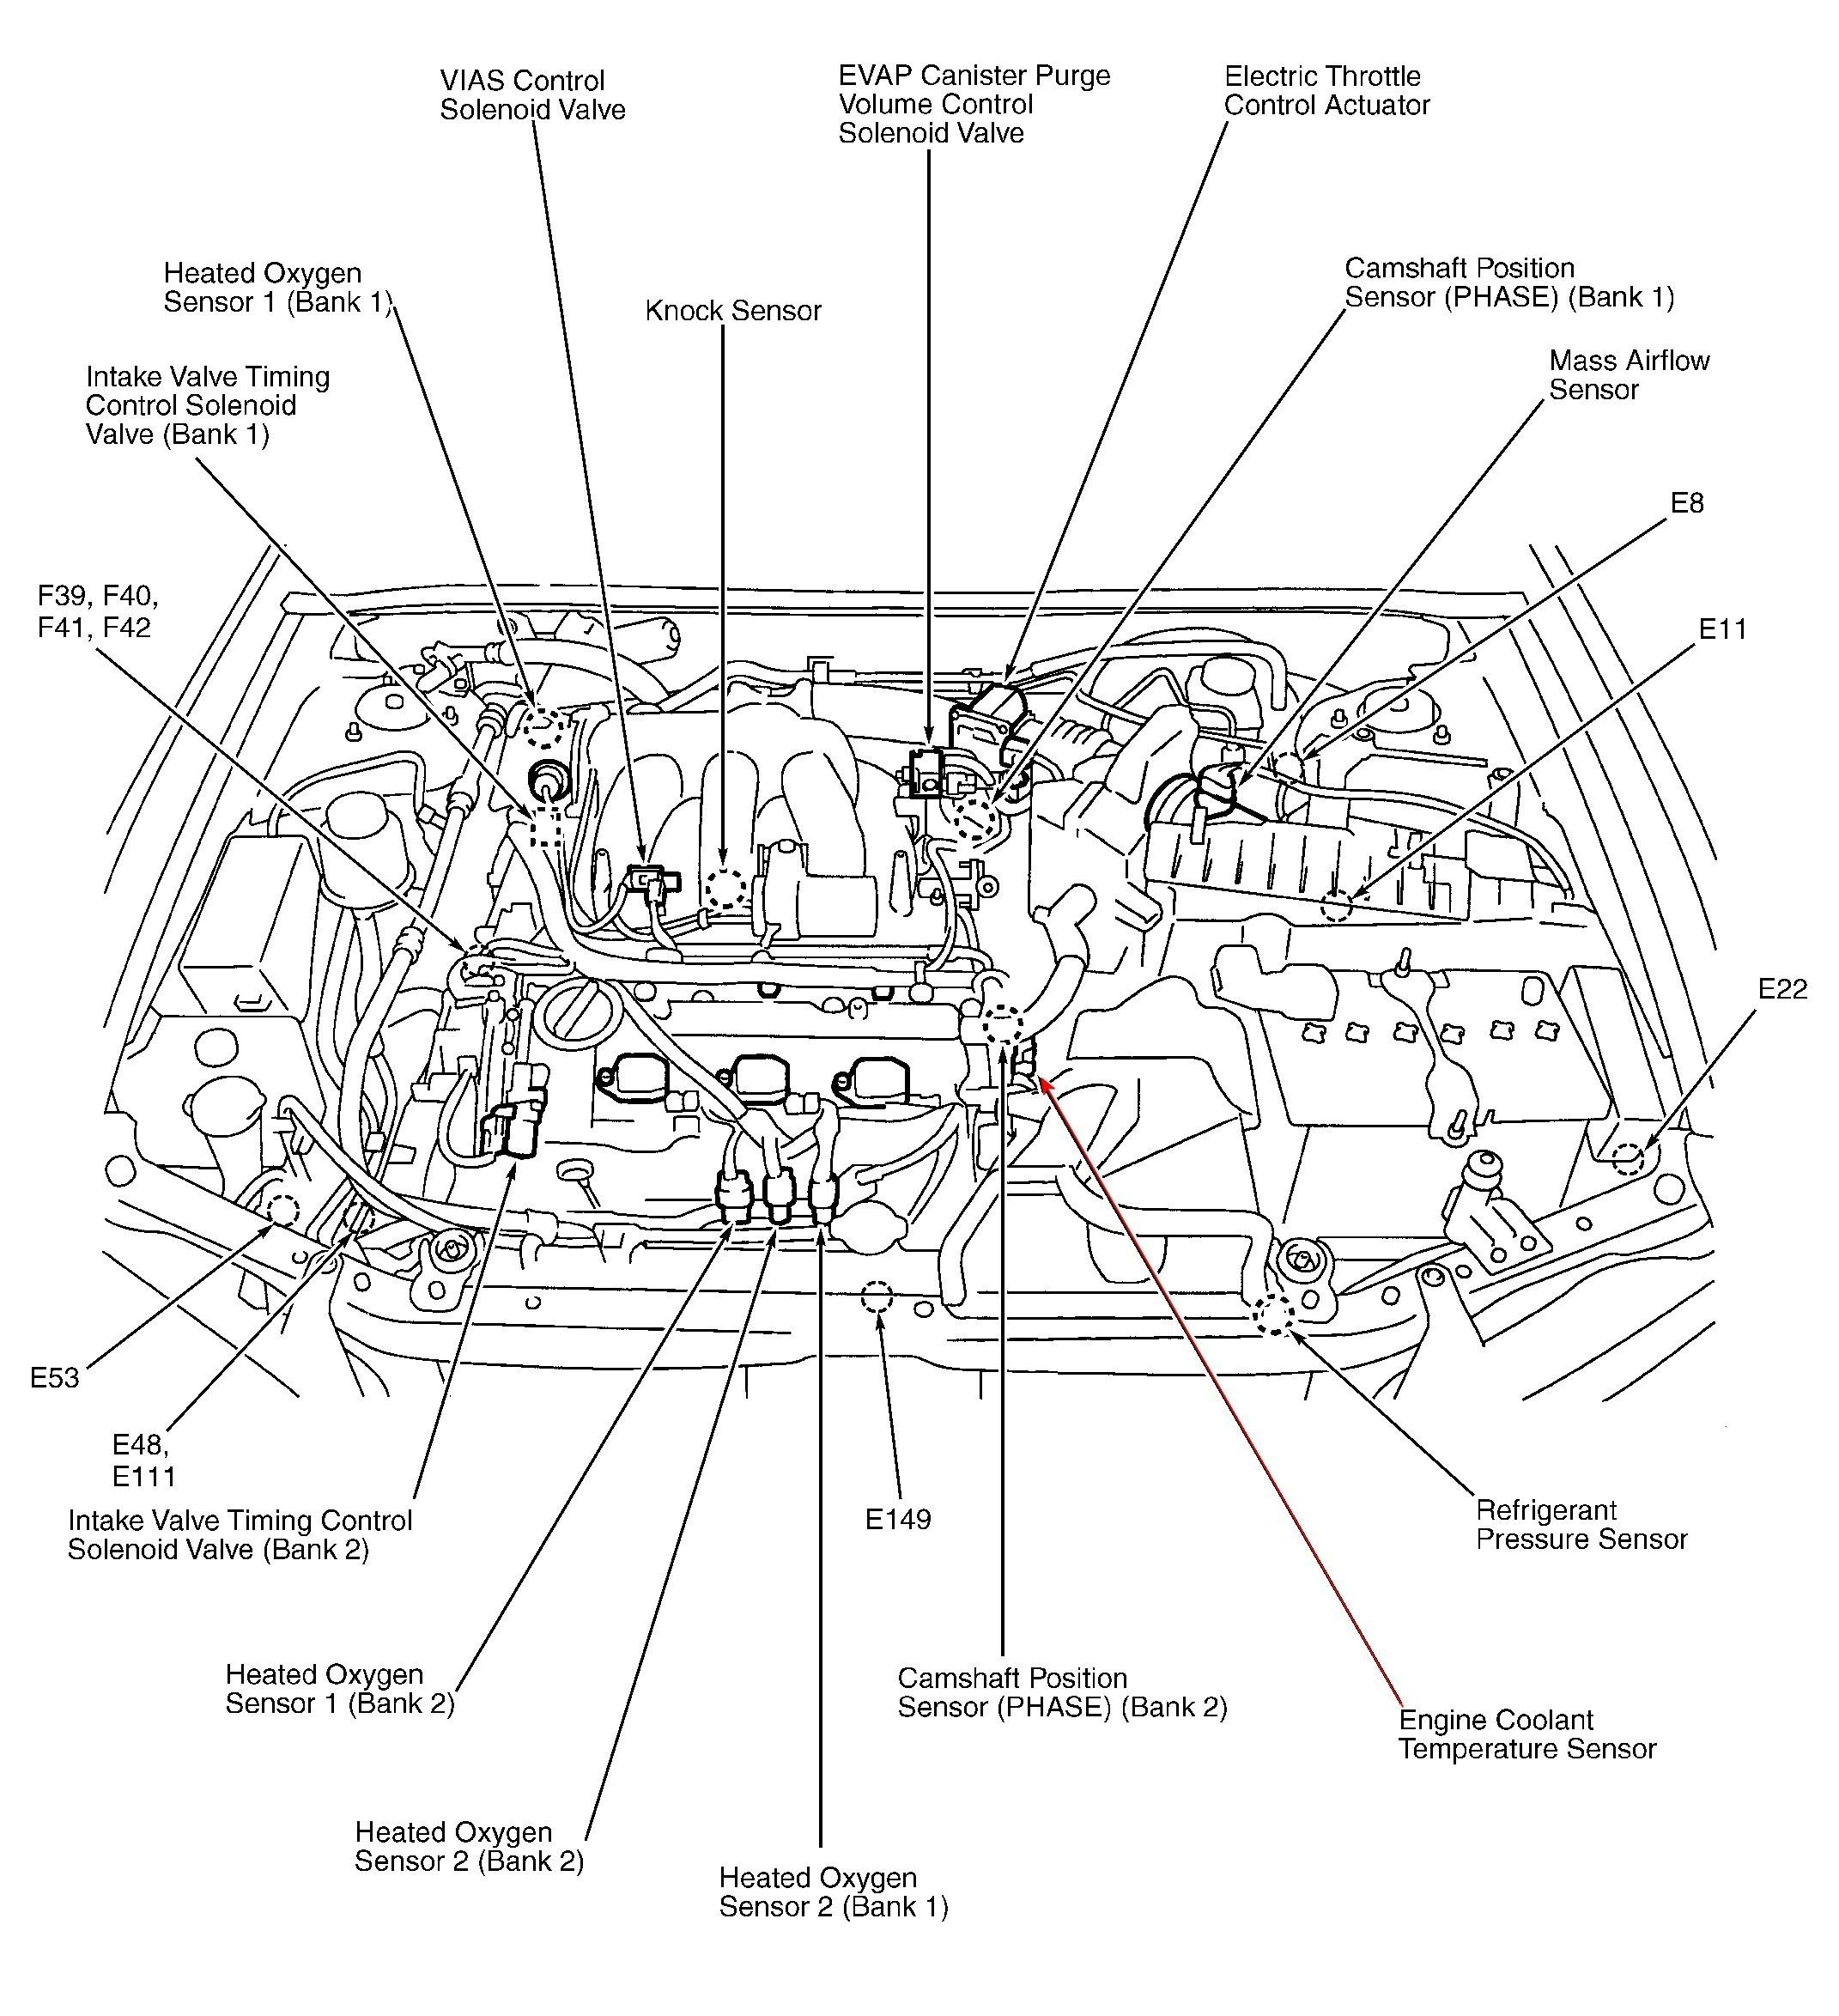 Car Radiator Parts Diagram Car Engine Labeled Diagram Inspirational Engine Parts Diagram with Of Car Radiator Parts Diagram Audi Mass Air Flow Sensor Fuel Metering Valve Air Cleaner with